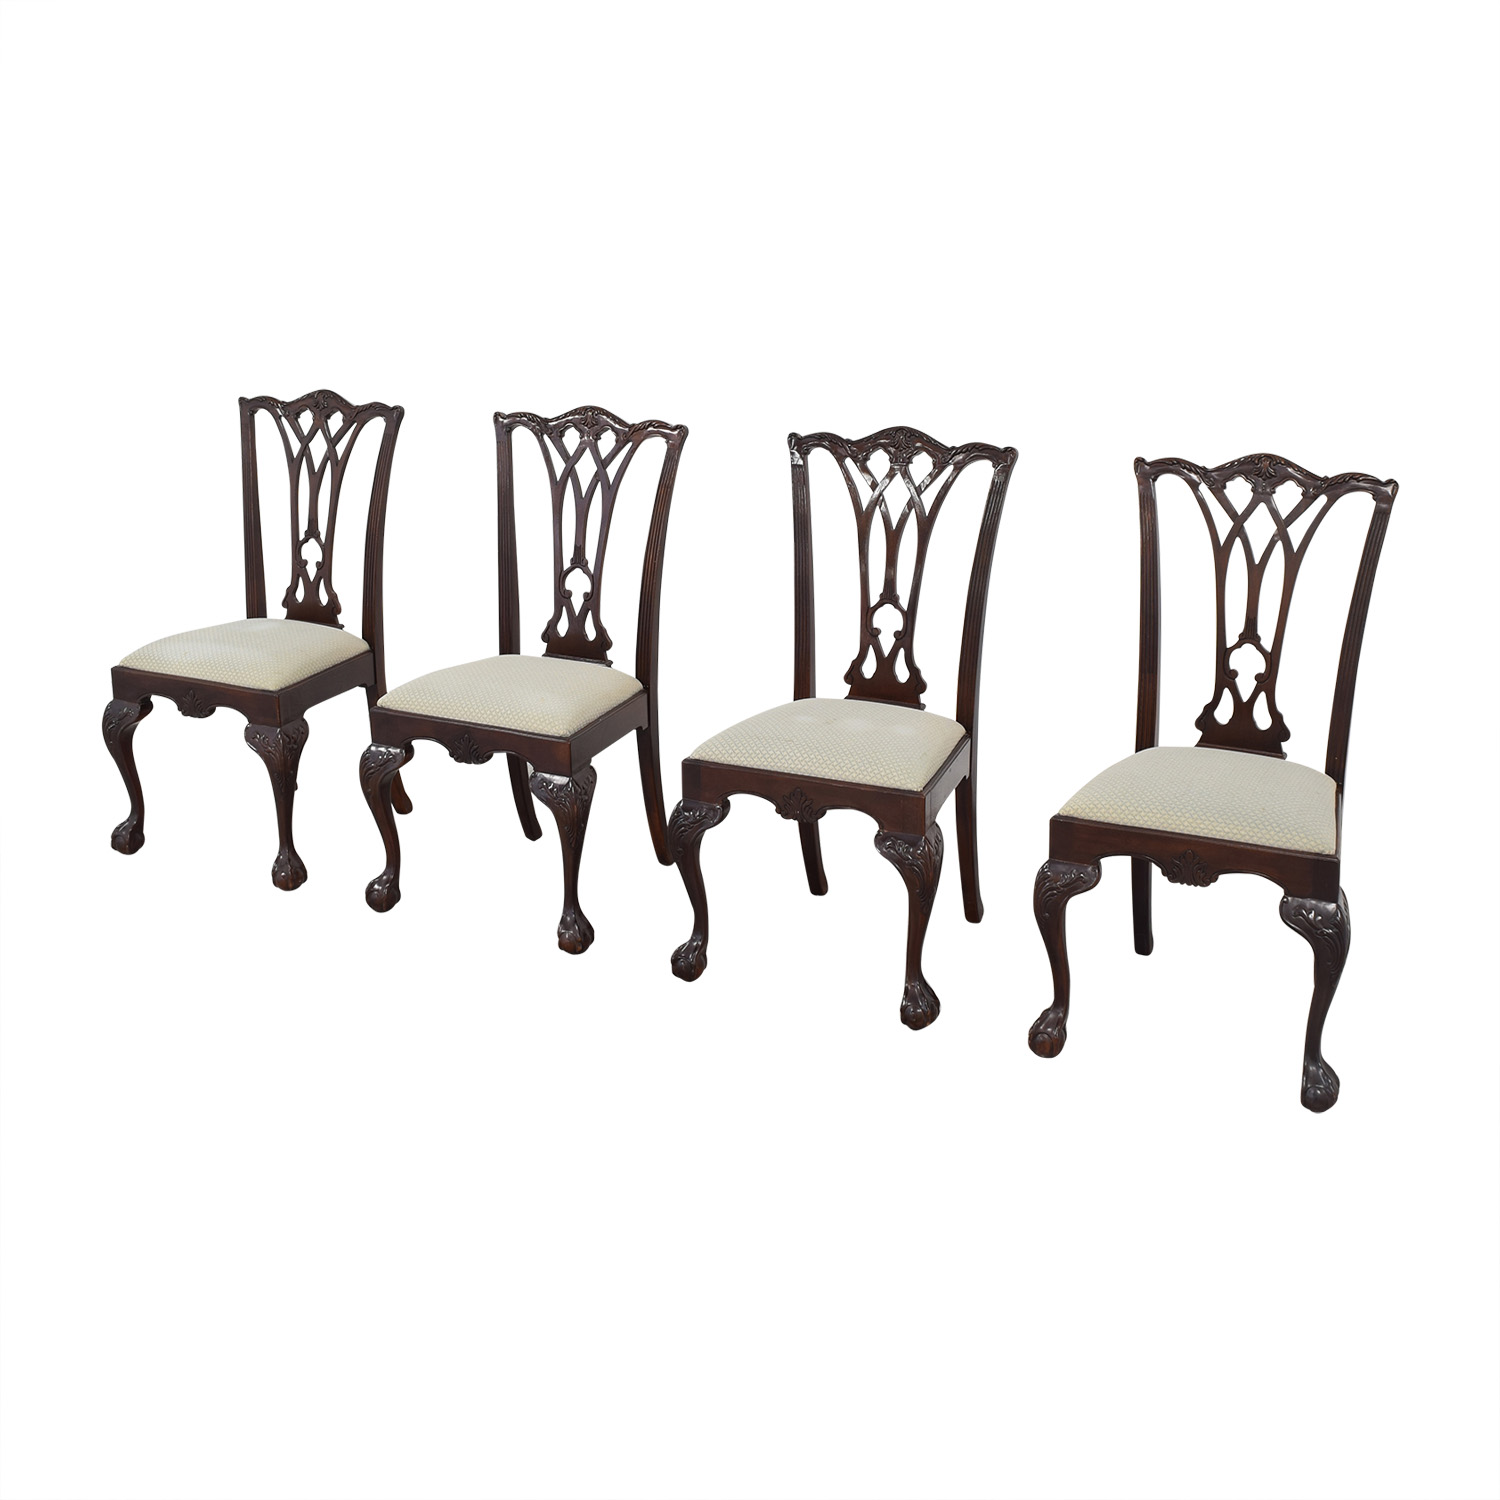 buy Drexel Heritage Armless Dining Chairs Drexel Heritage